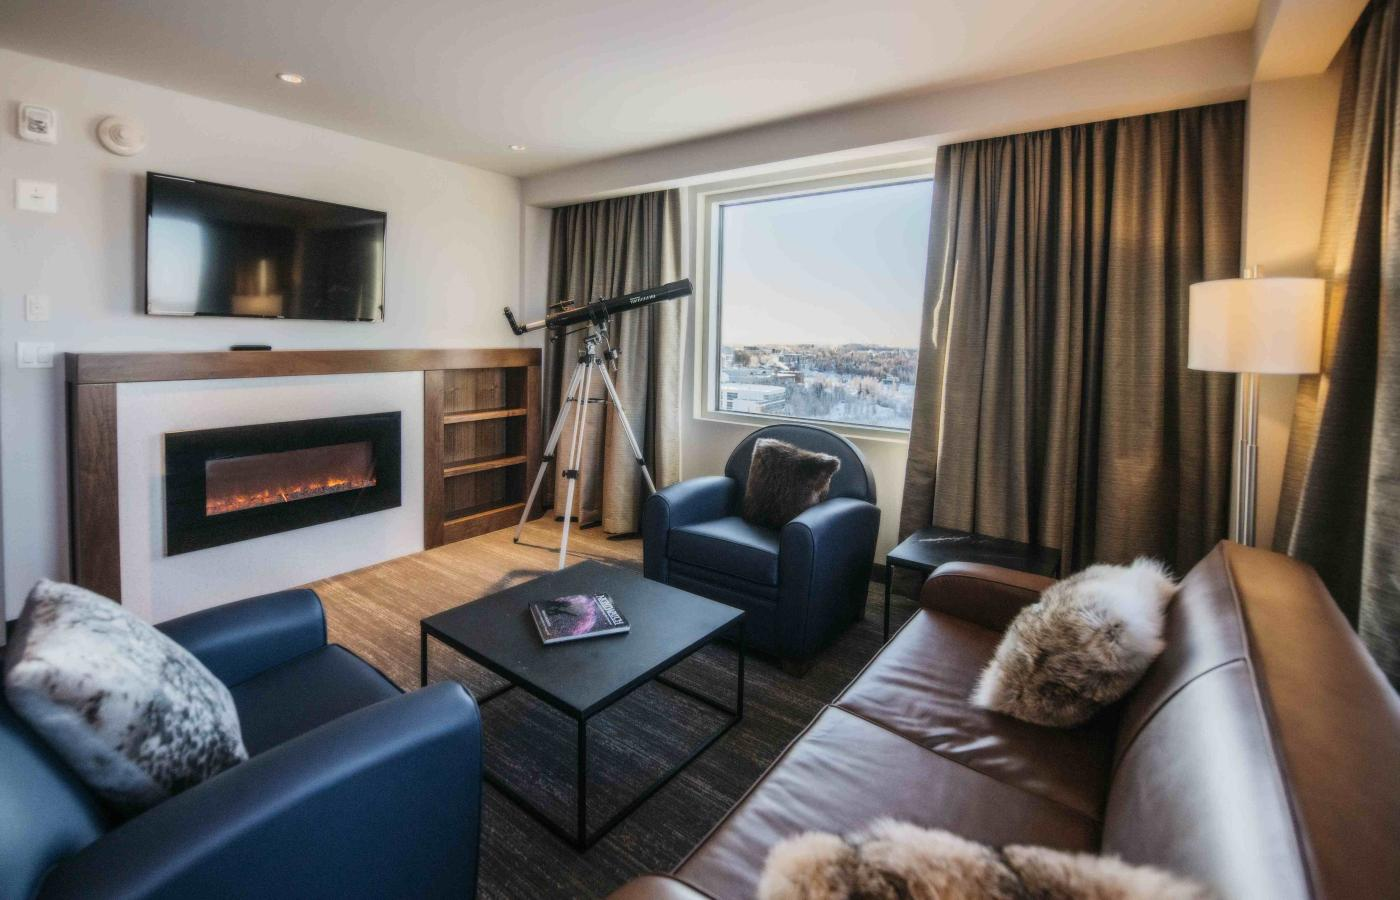 Aurora Signature suite in the Explorer Hotel in Yellowknife, Northwest Territories